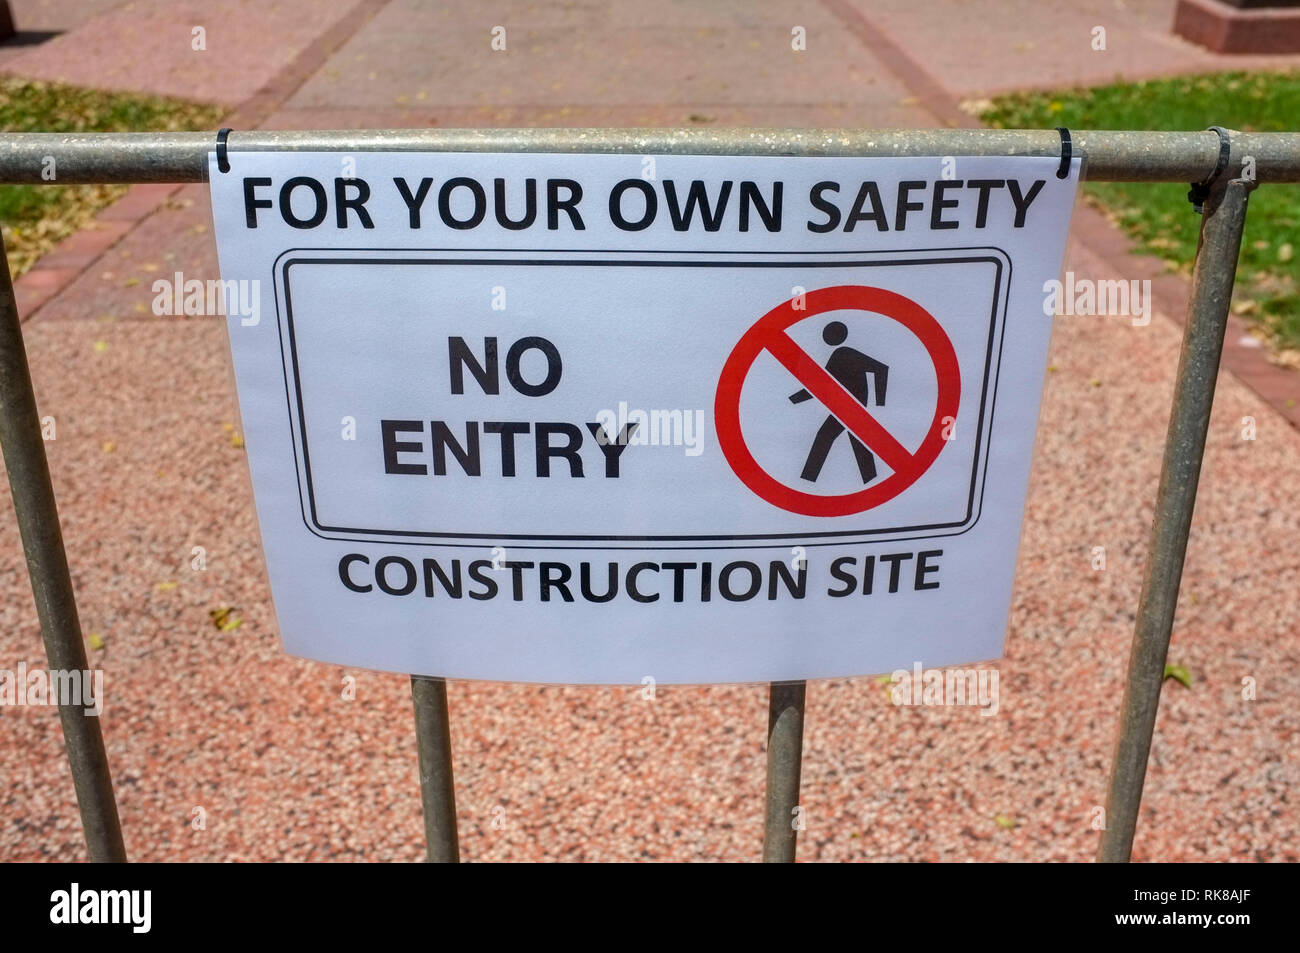 A No Entry Construction Site sign. - Stock Image